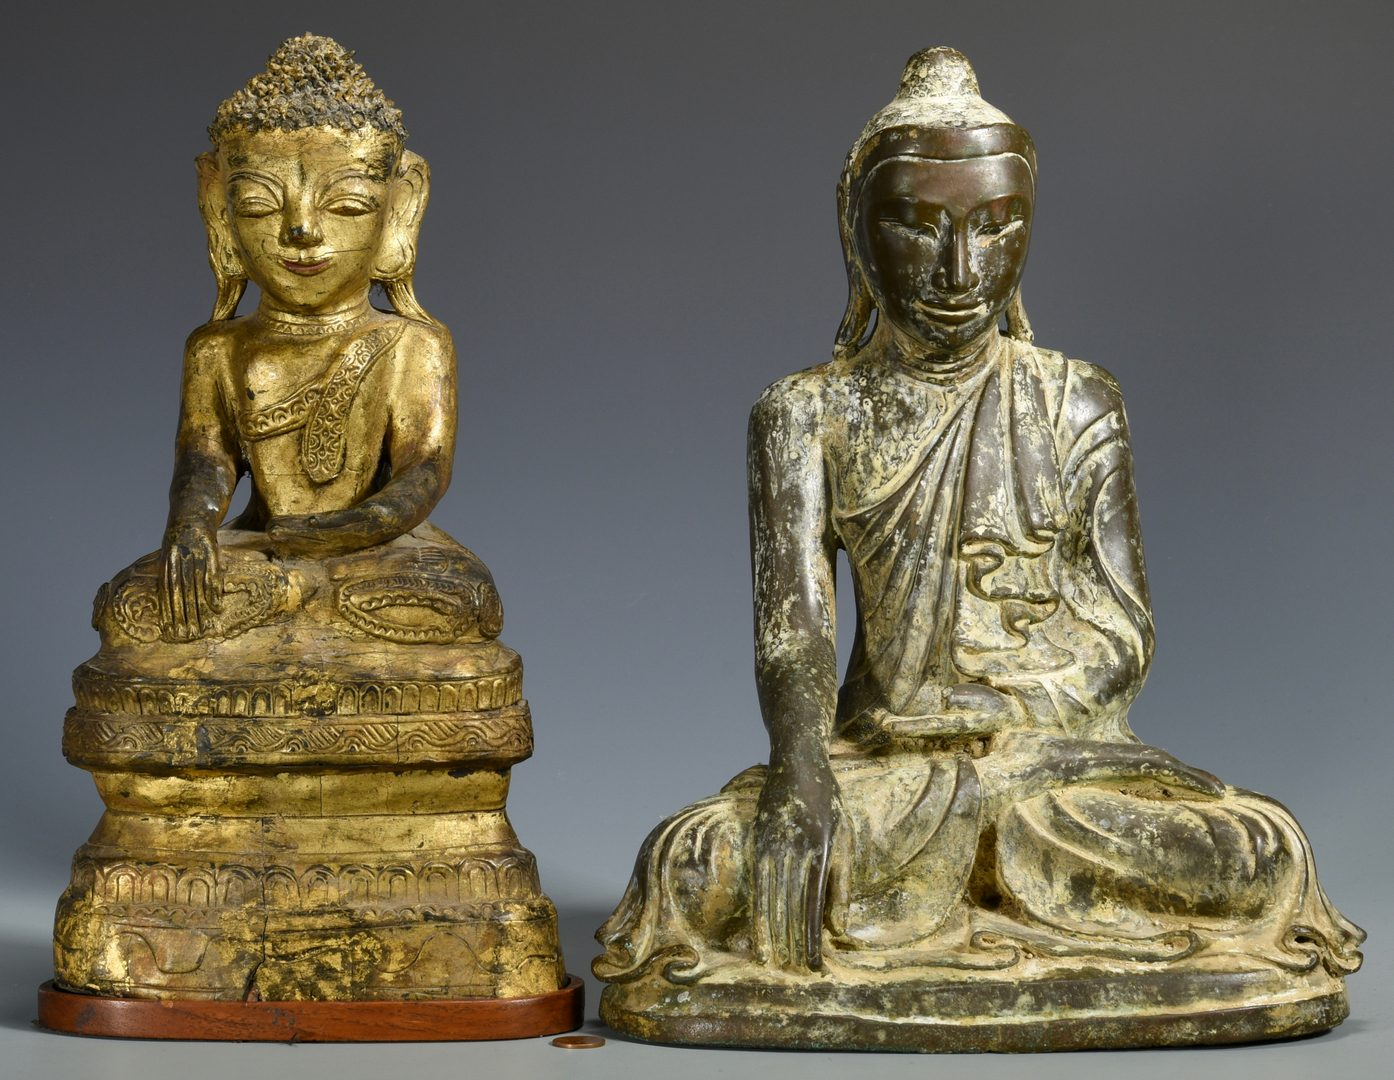 Lot 330: 2 Southeast Asian Buddhas, incl. 1 Bronze